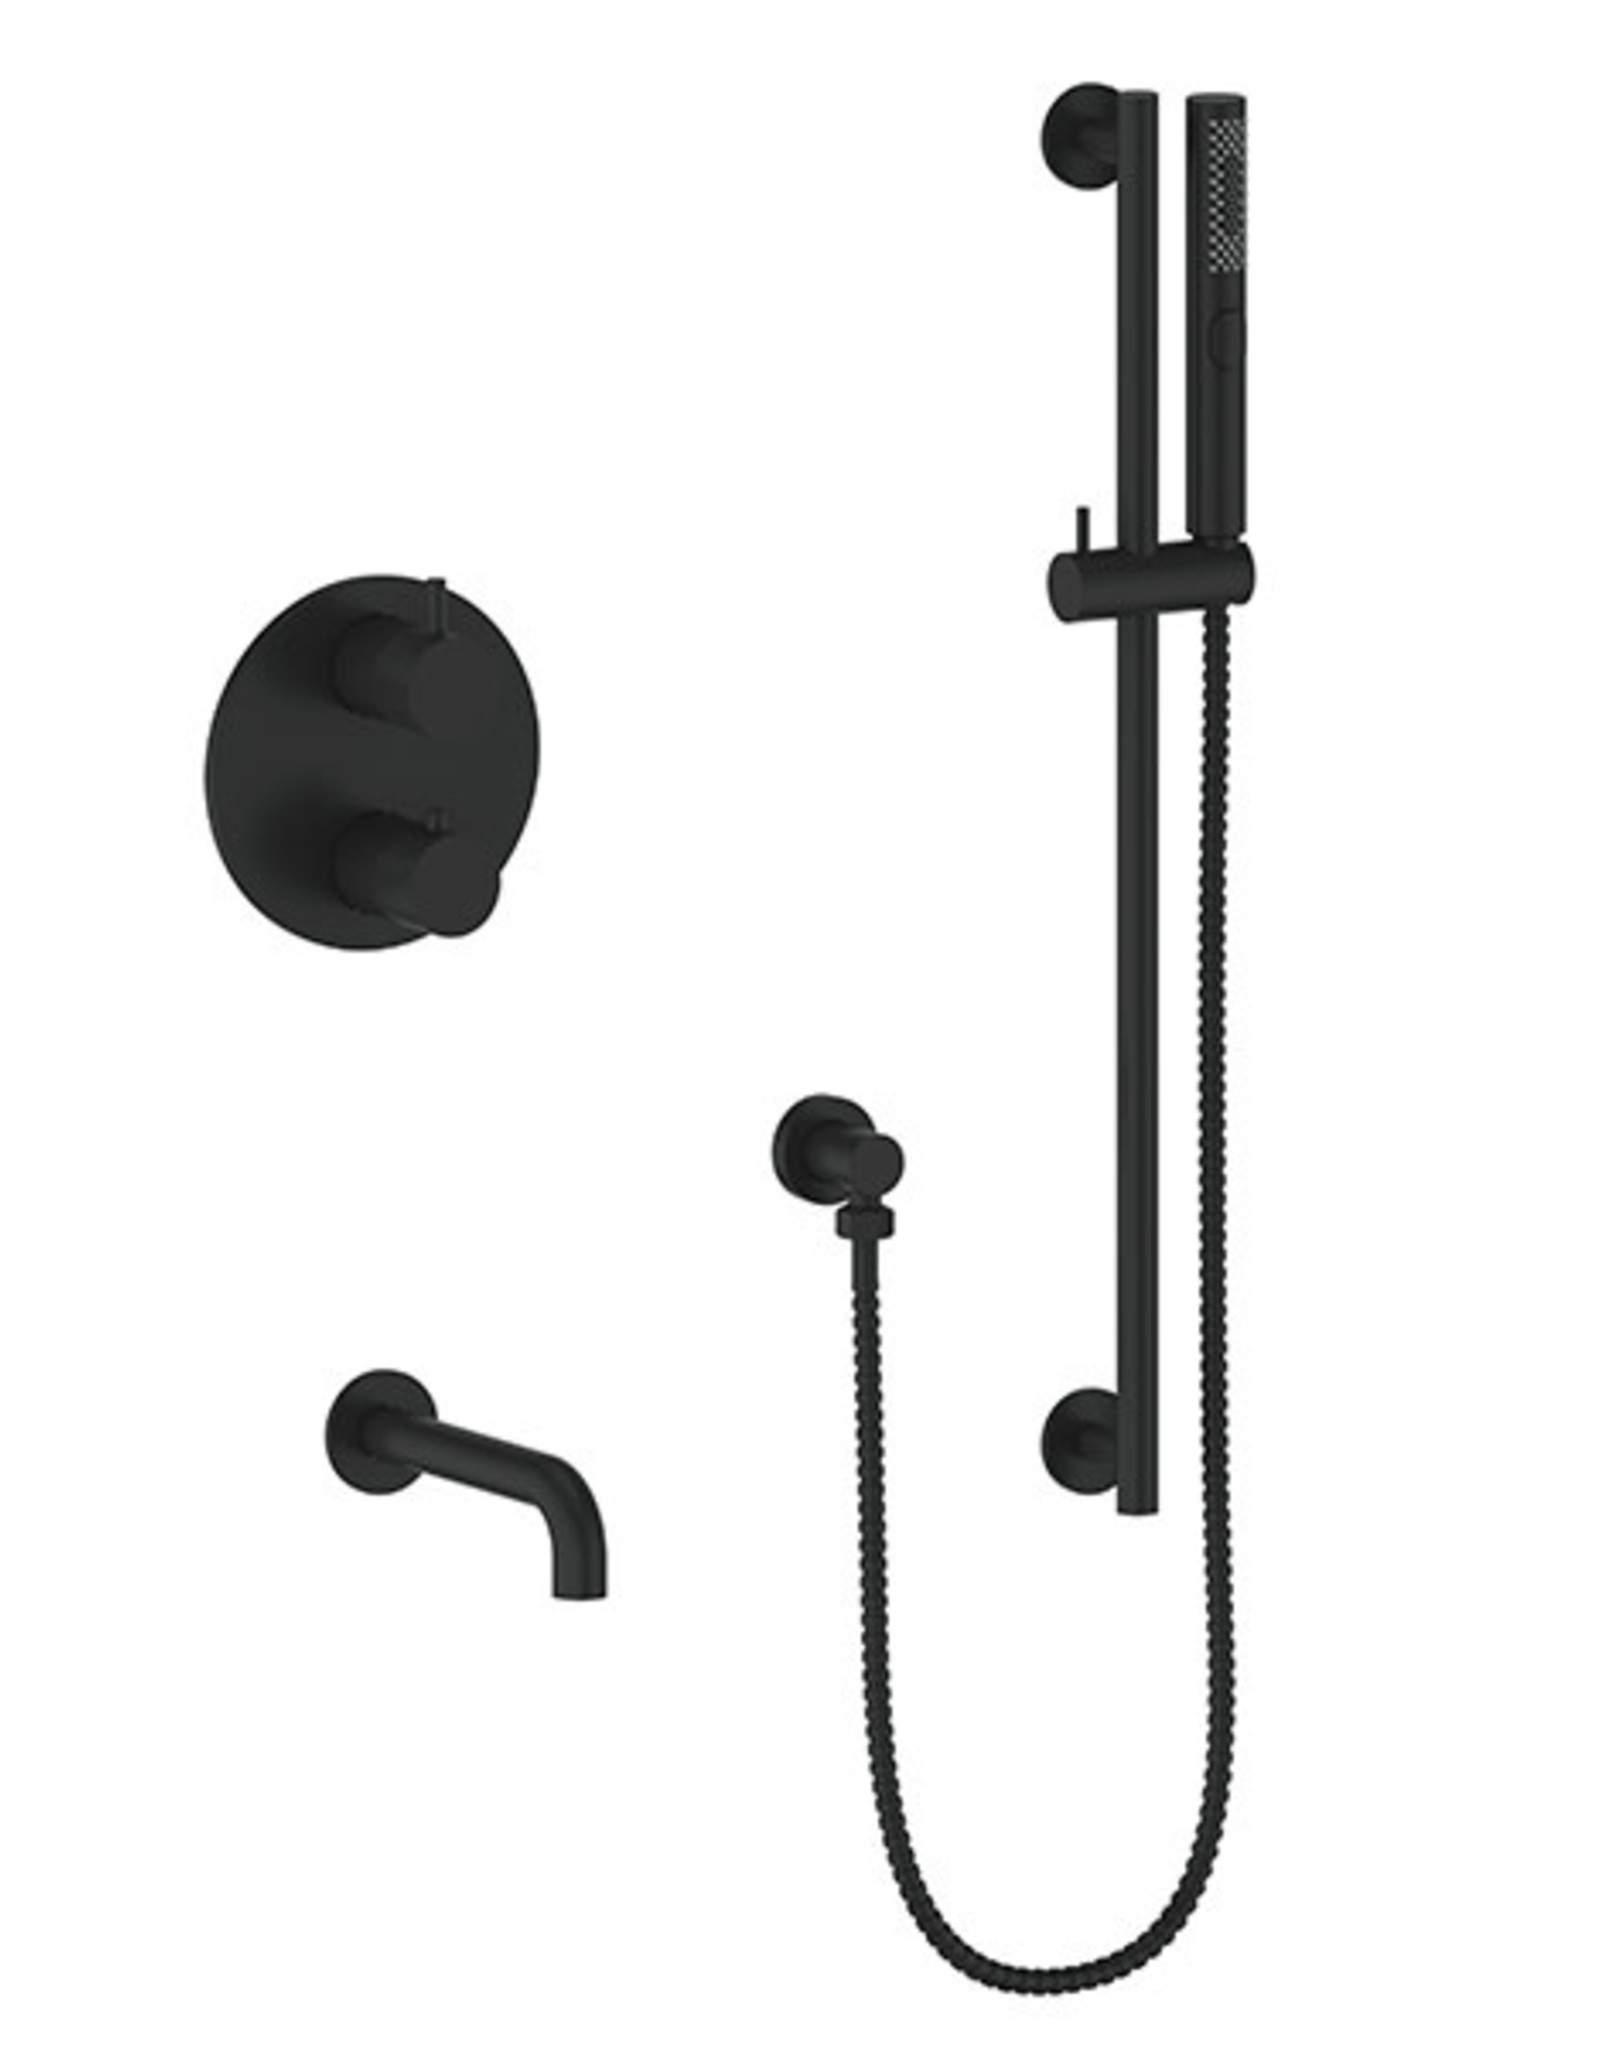 Vogt Drava 2-Way Thermostatic Shower System- Matte Black